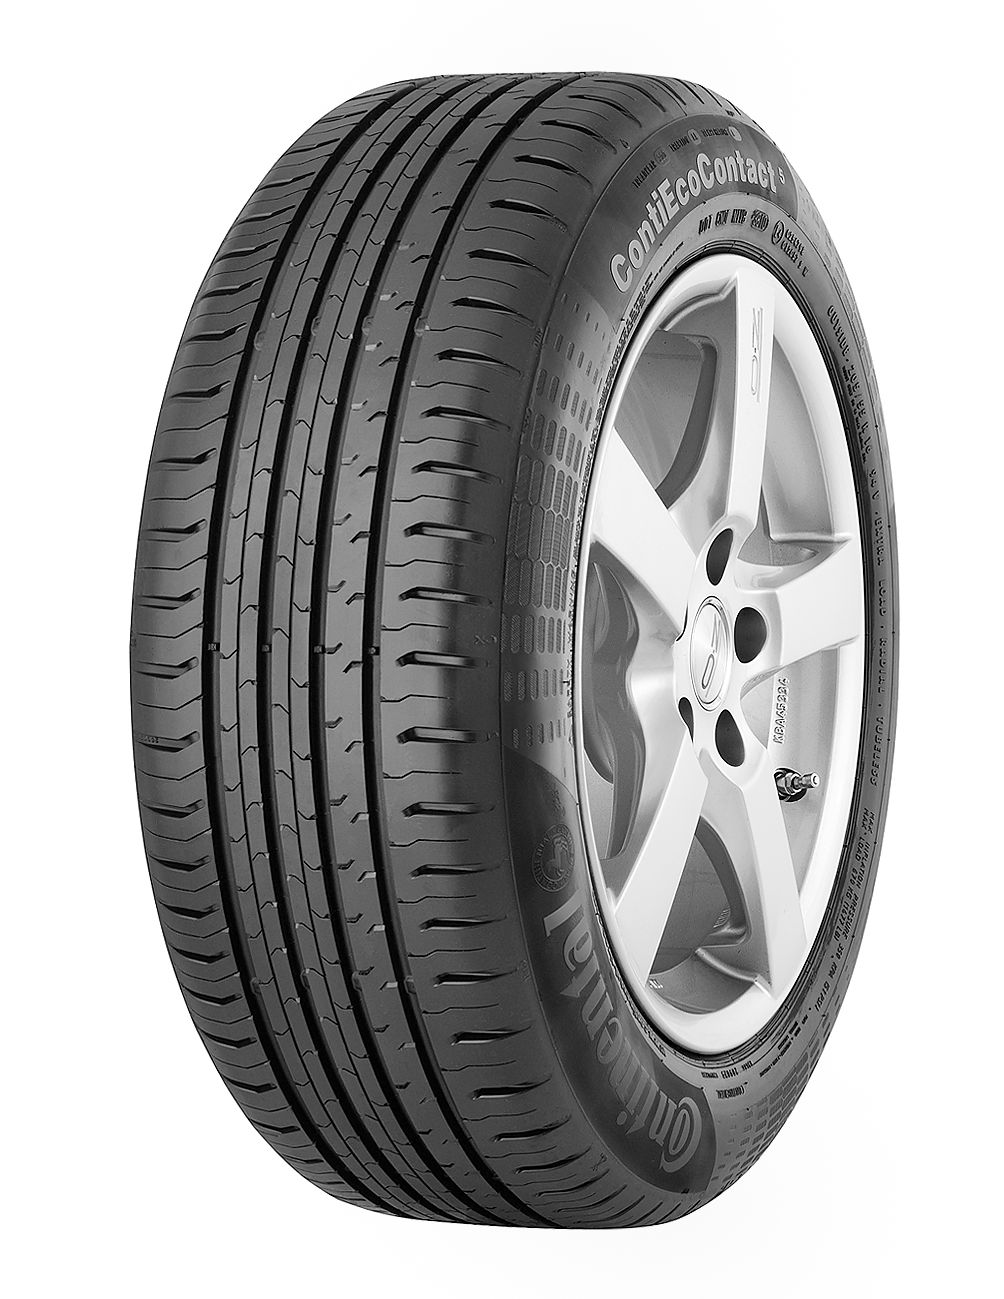 CONTINENTAL ECO 5 205/55 R16 94H SEAL XL